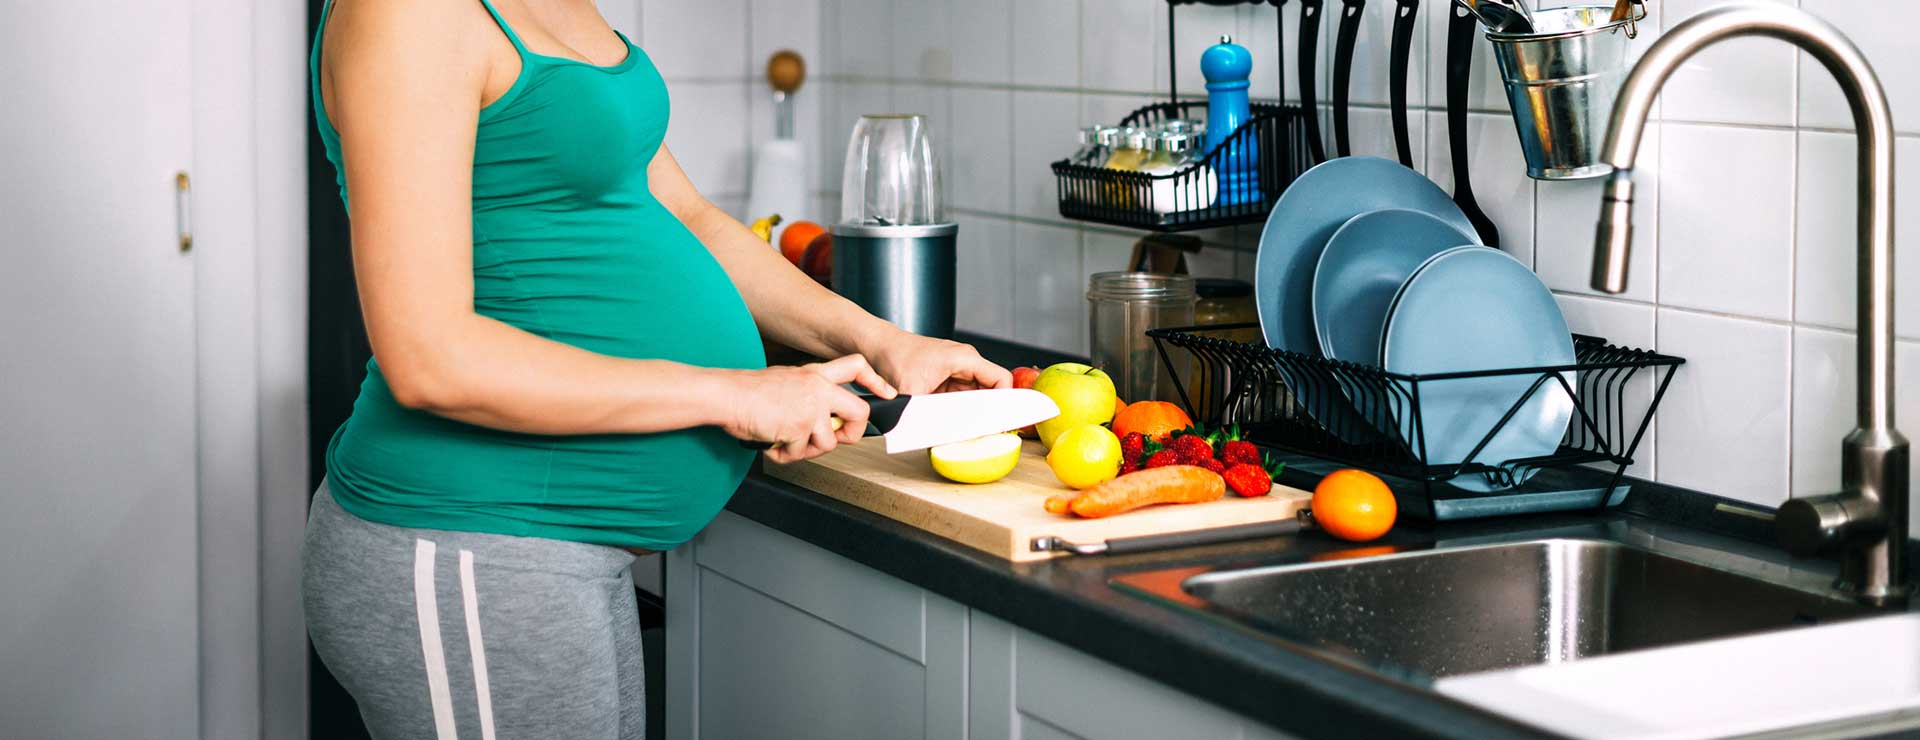 A pregnant woman cuts fruit for a smoothie.